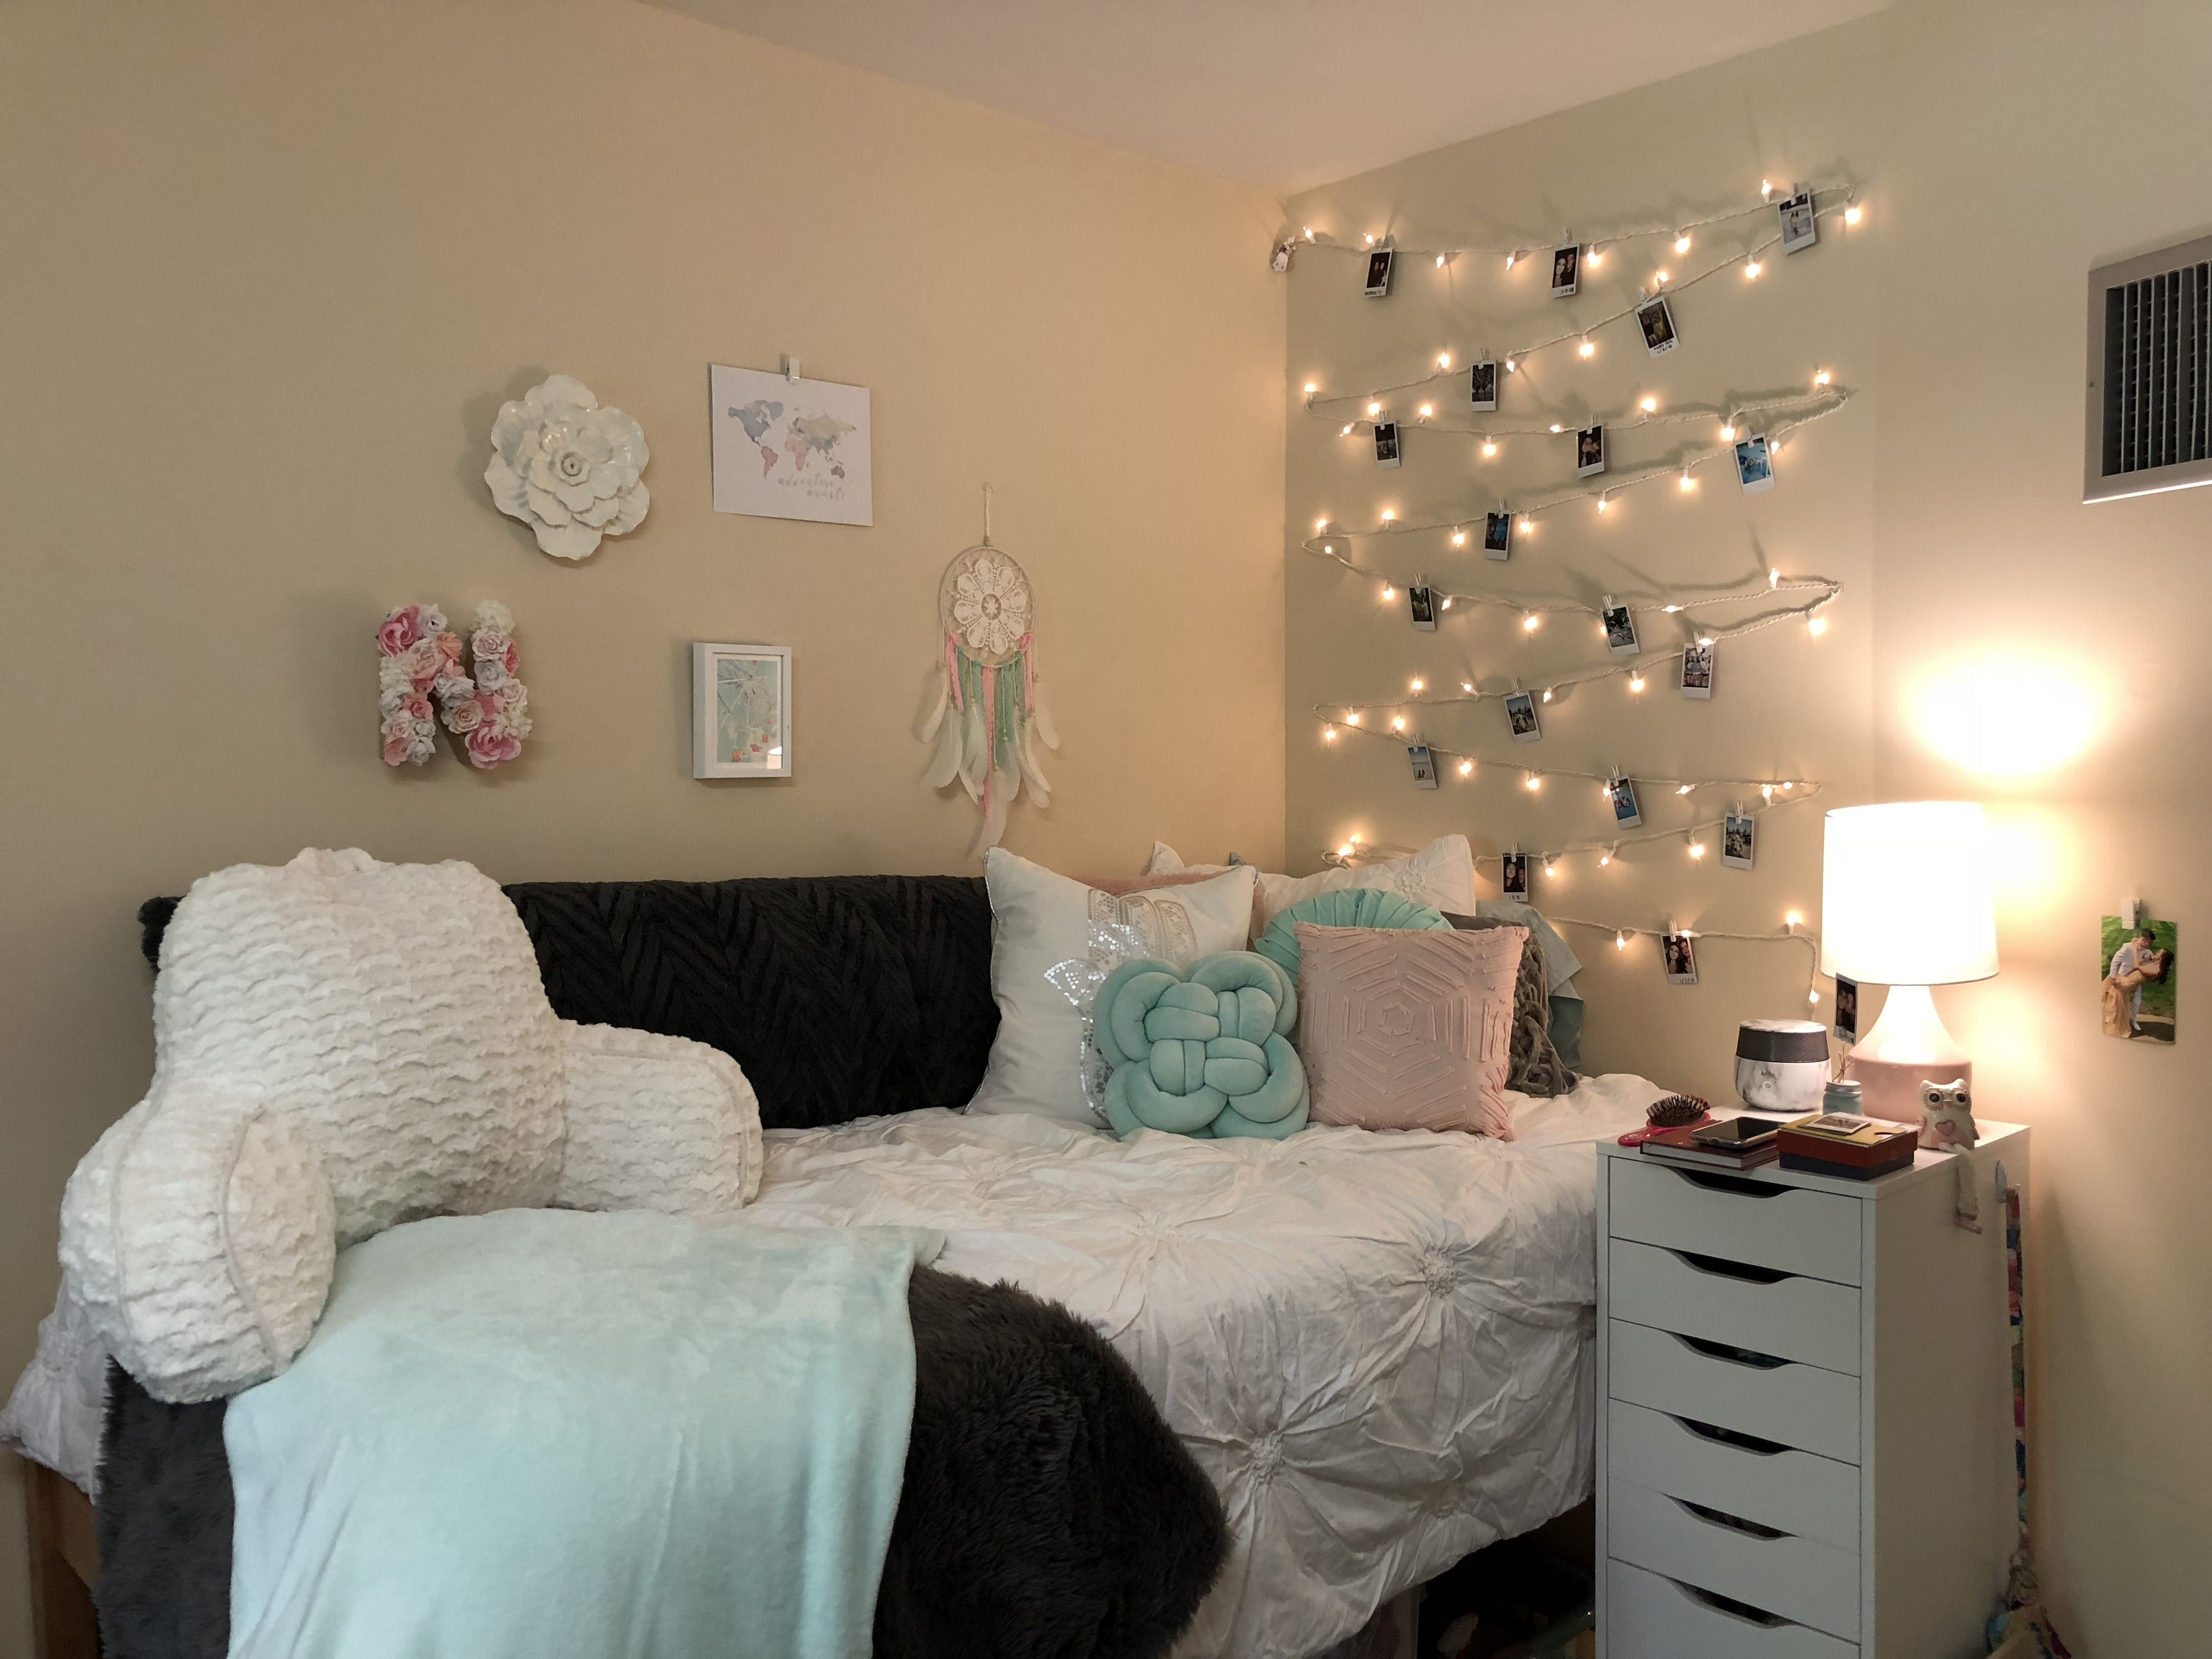 Pink, mint, white, and gray color themed dorm room